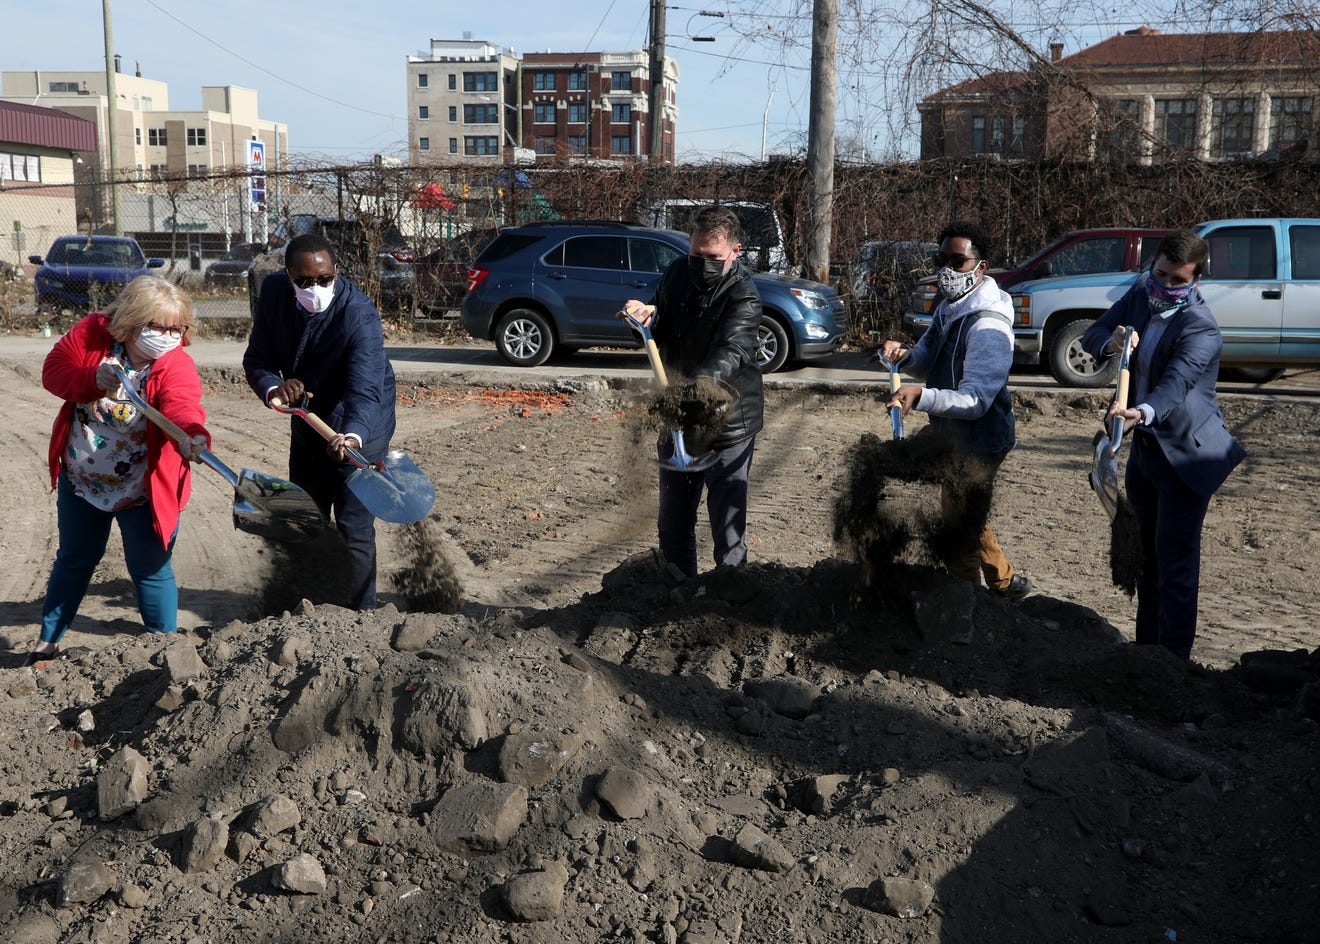 Detroit Free Press: Ruth Ellis Center breaks ground on housing development and health clinic for LGBTQ youth